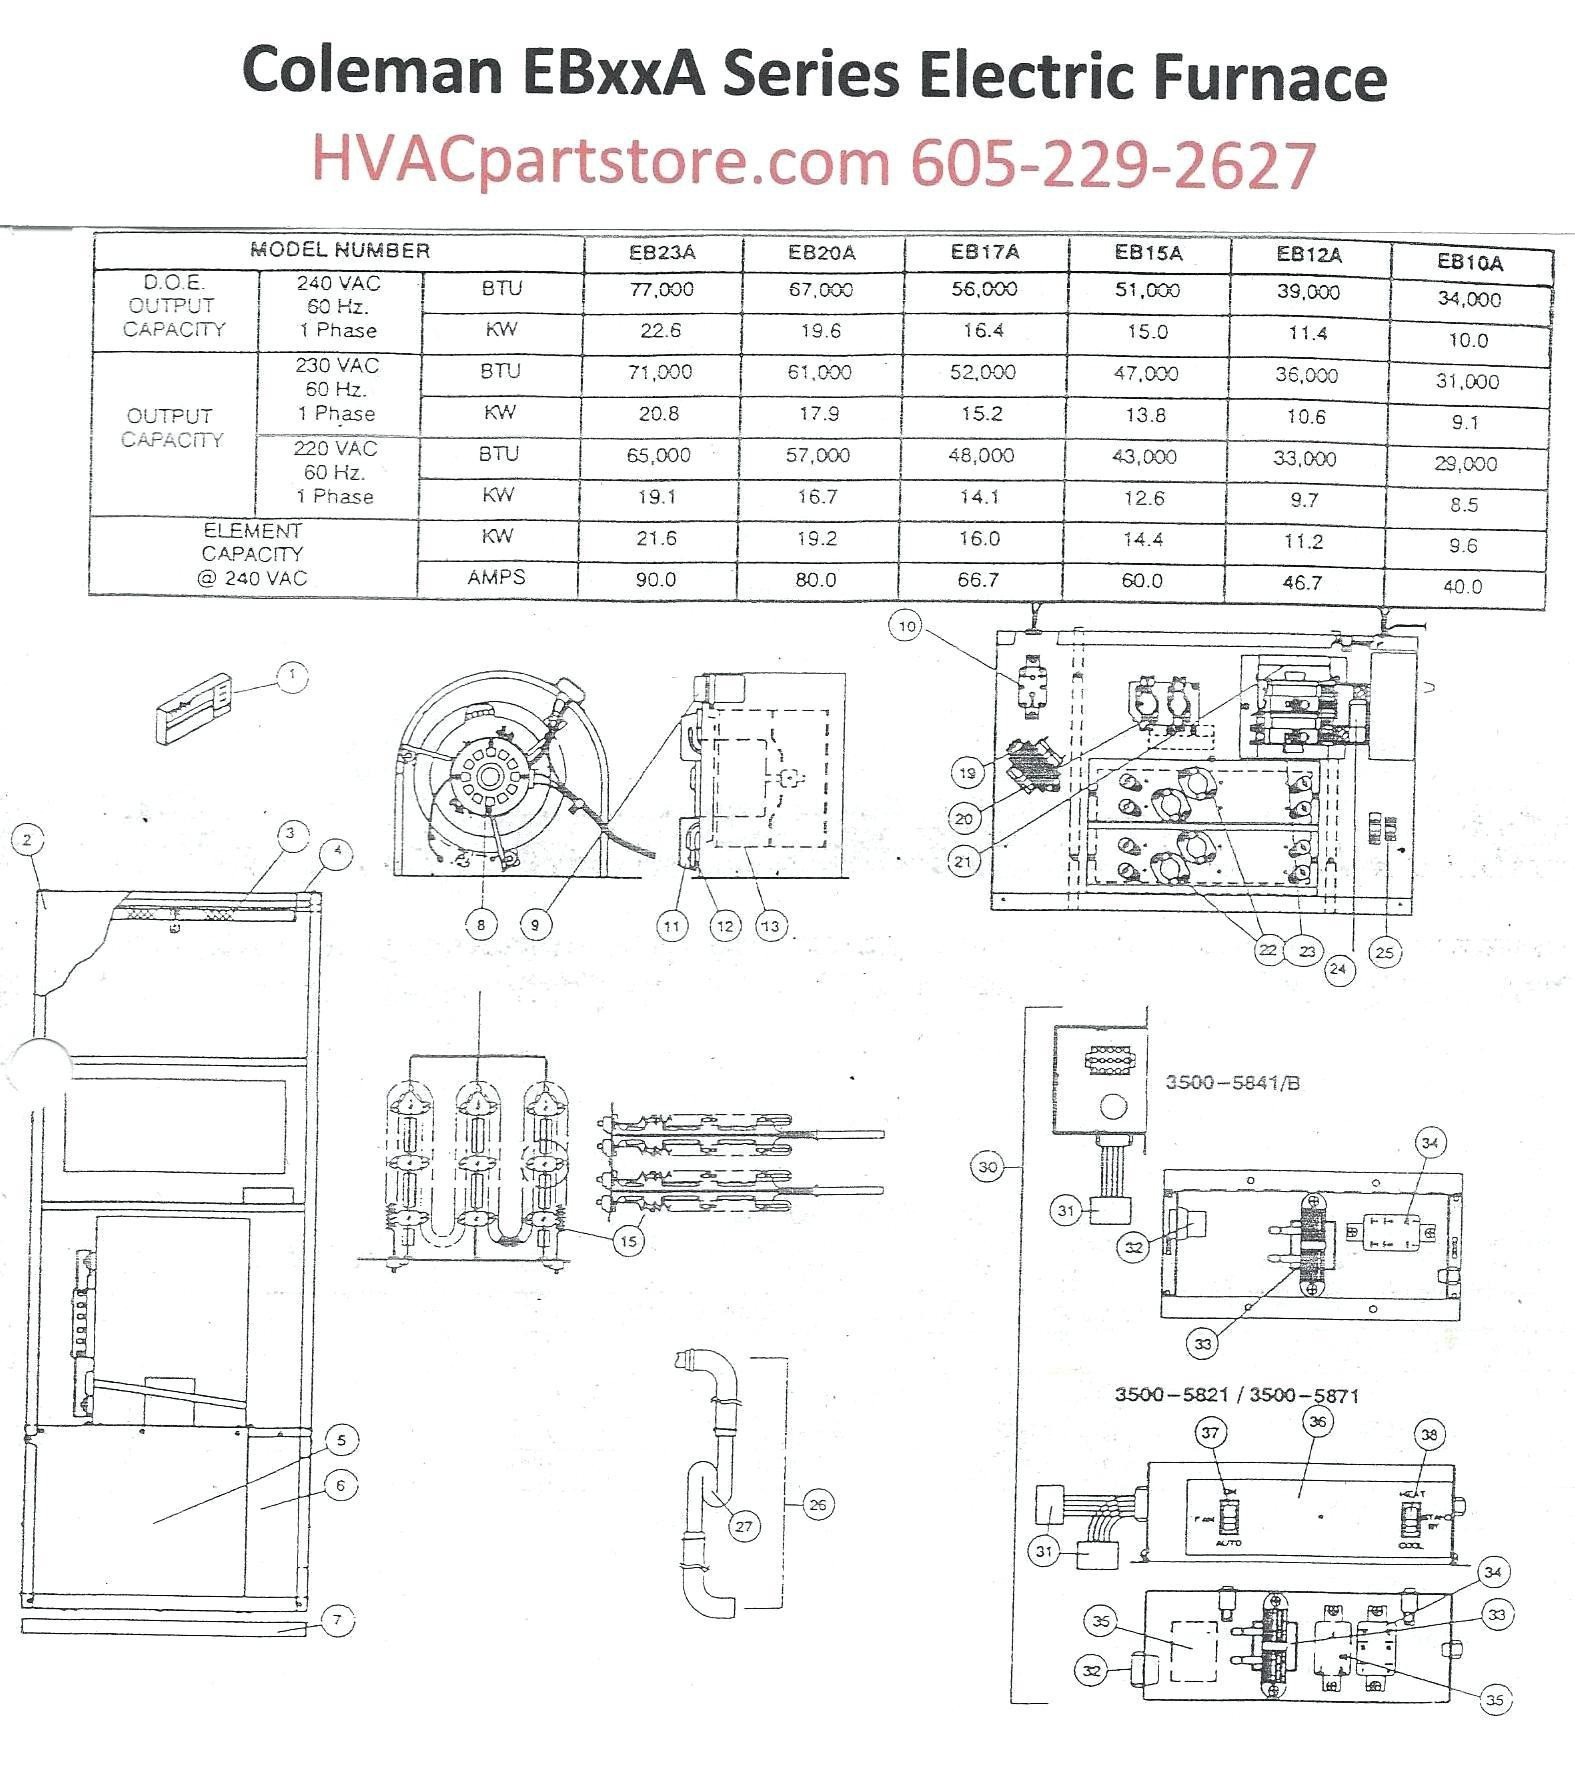 york electric furnace wiring diagram Download-York Electric Furnace Wiring Diagram Best York Gas Furnace Wiring Diagram Inspirationa Coleman Electric 15-t